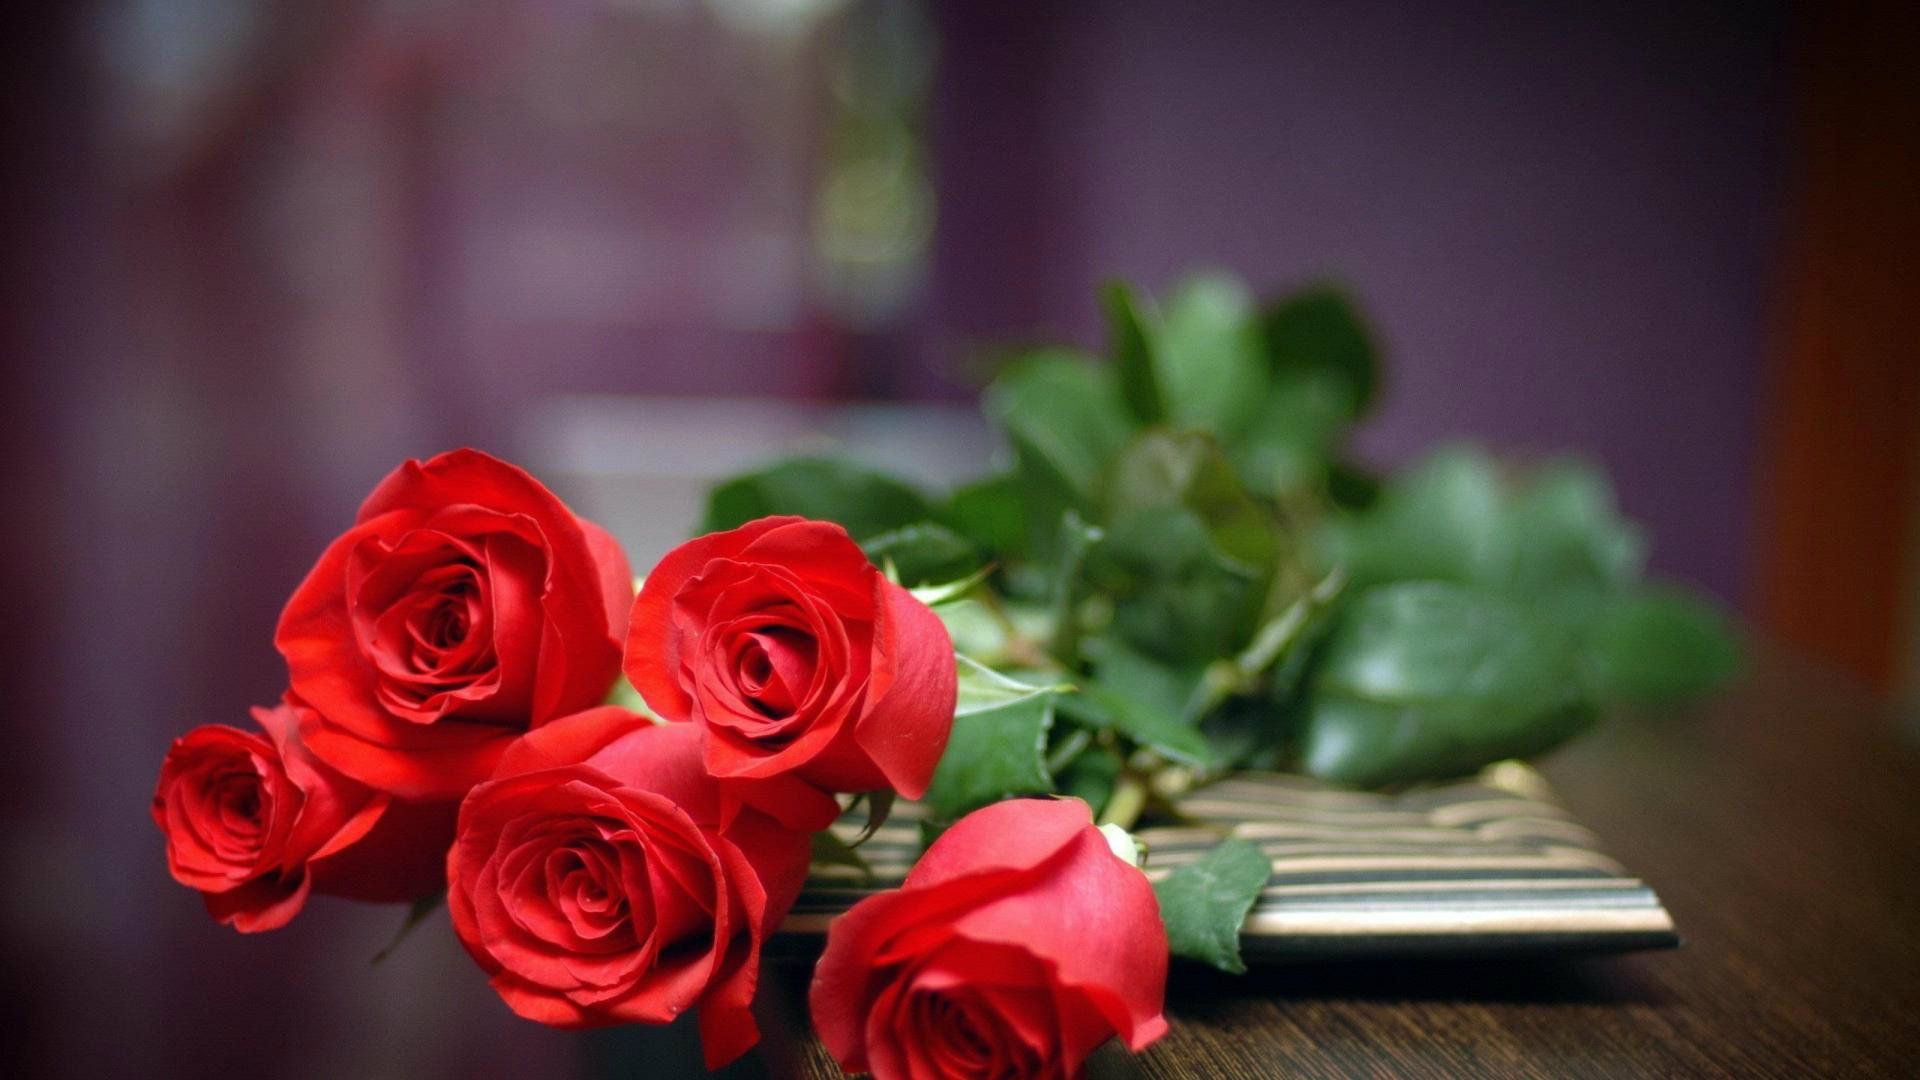 Most beautiful red roses hd wallpapers flowers pictures hd most beautiful red roses hd wallpapers flowers pictures hd izmirmasajfo